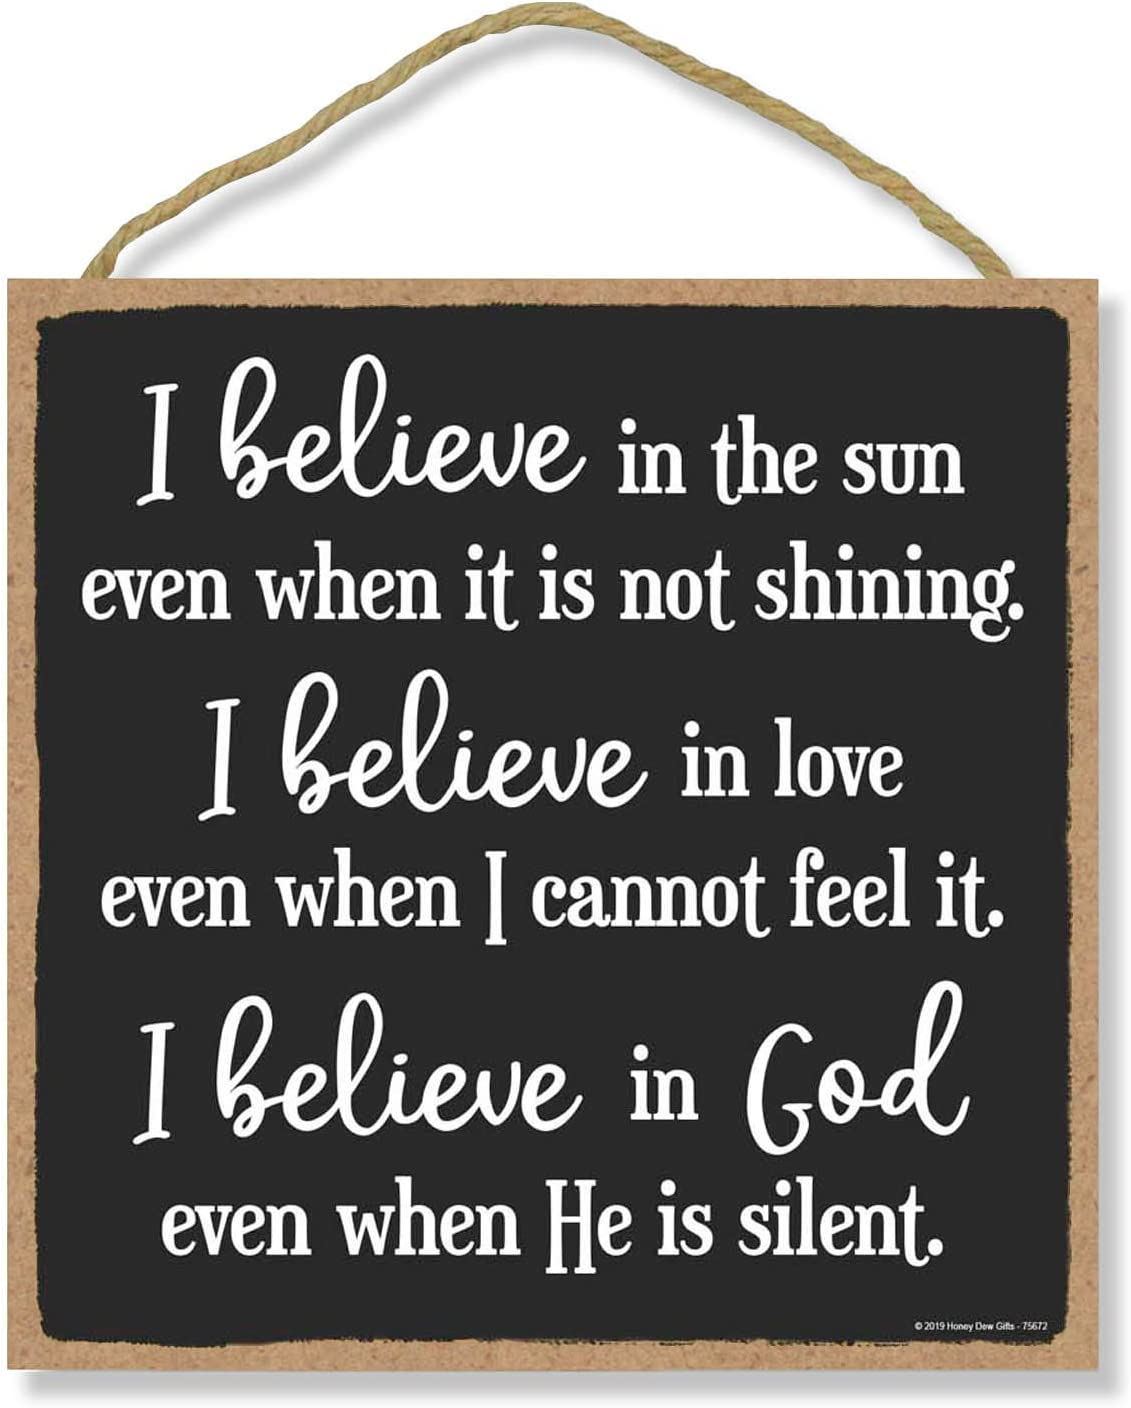 Honey Dew Gifts Christian Wall Decor, I Believe in God 10 inch by 10 inch Hanging Sign, Wall Art, Decorative Wood Sign Home Decor